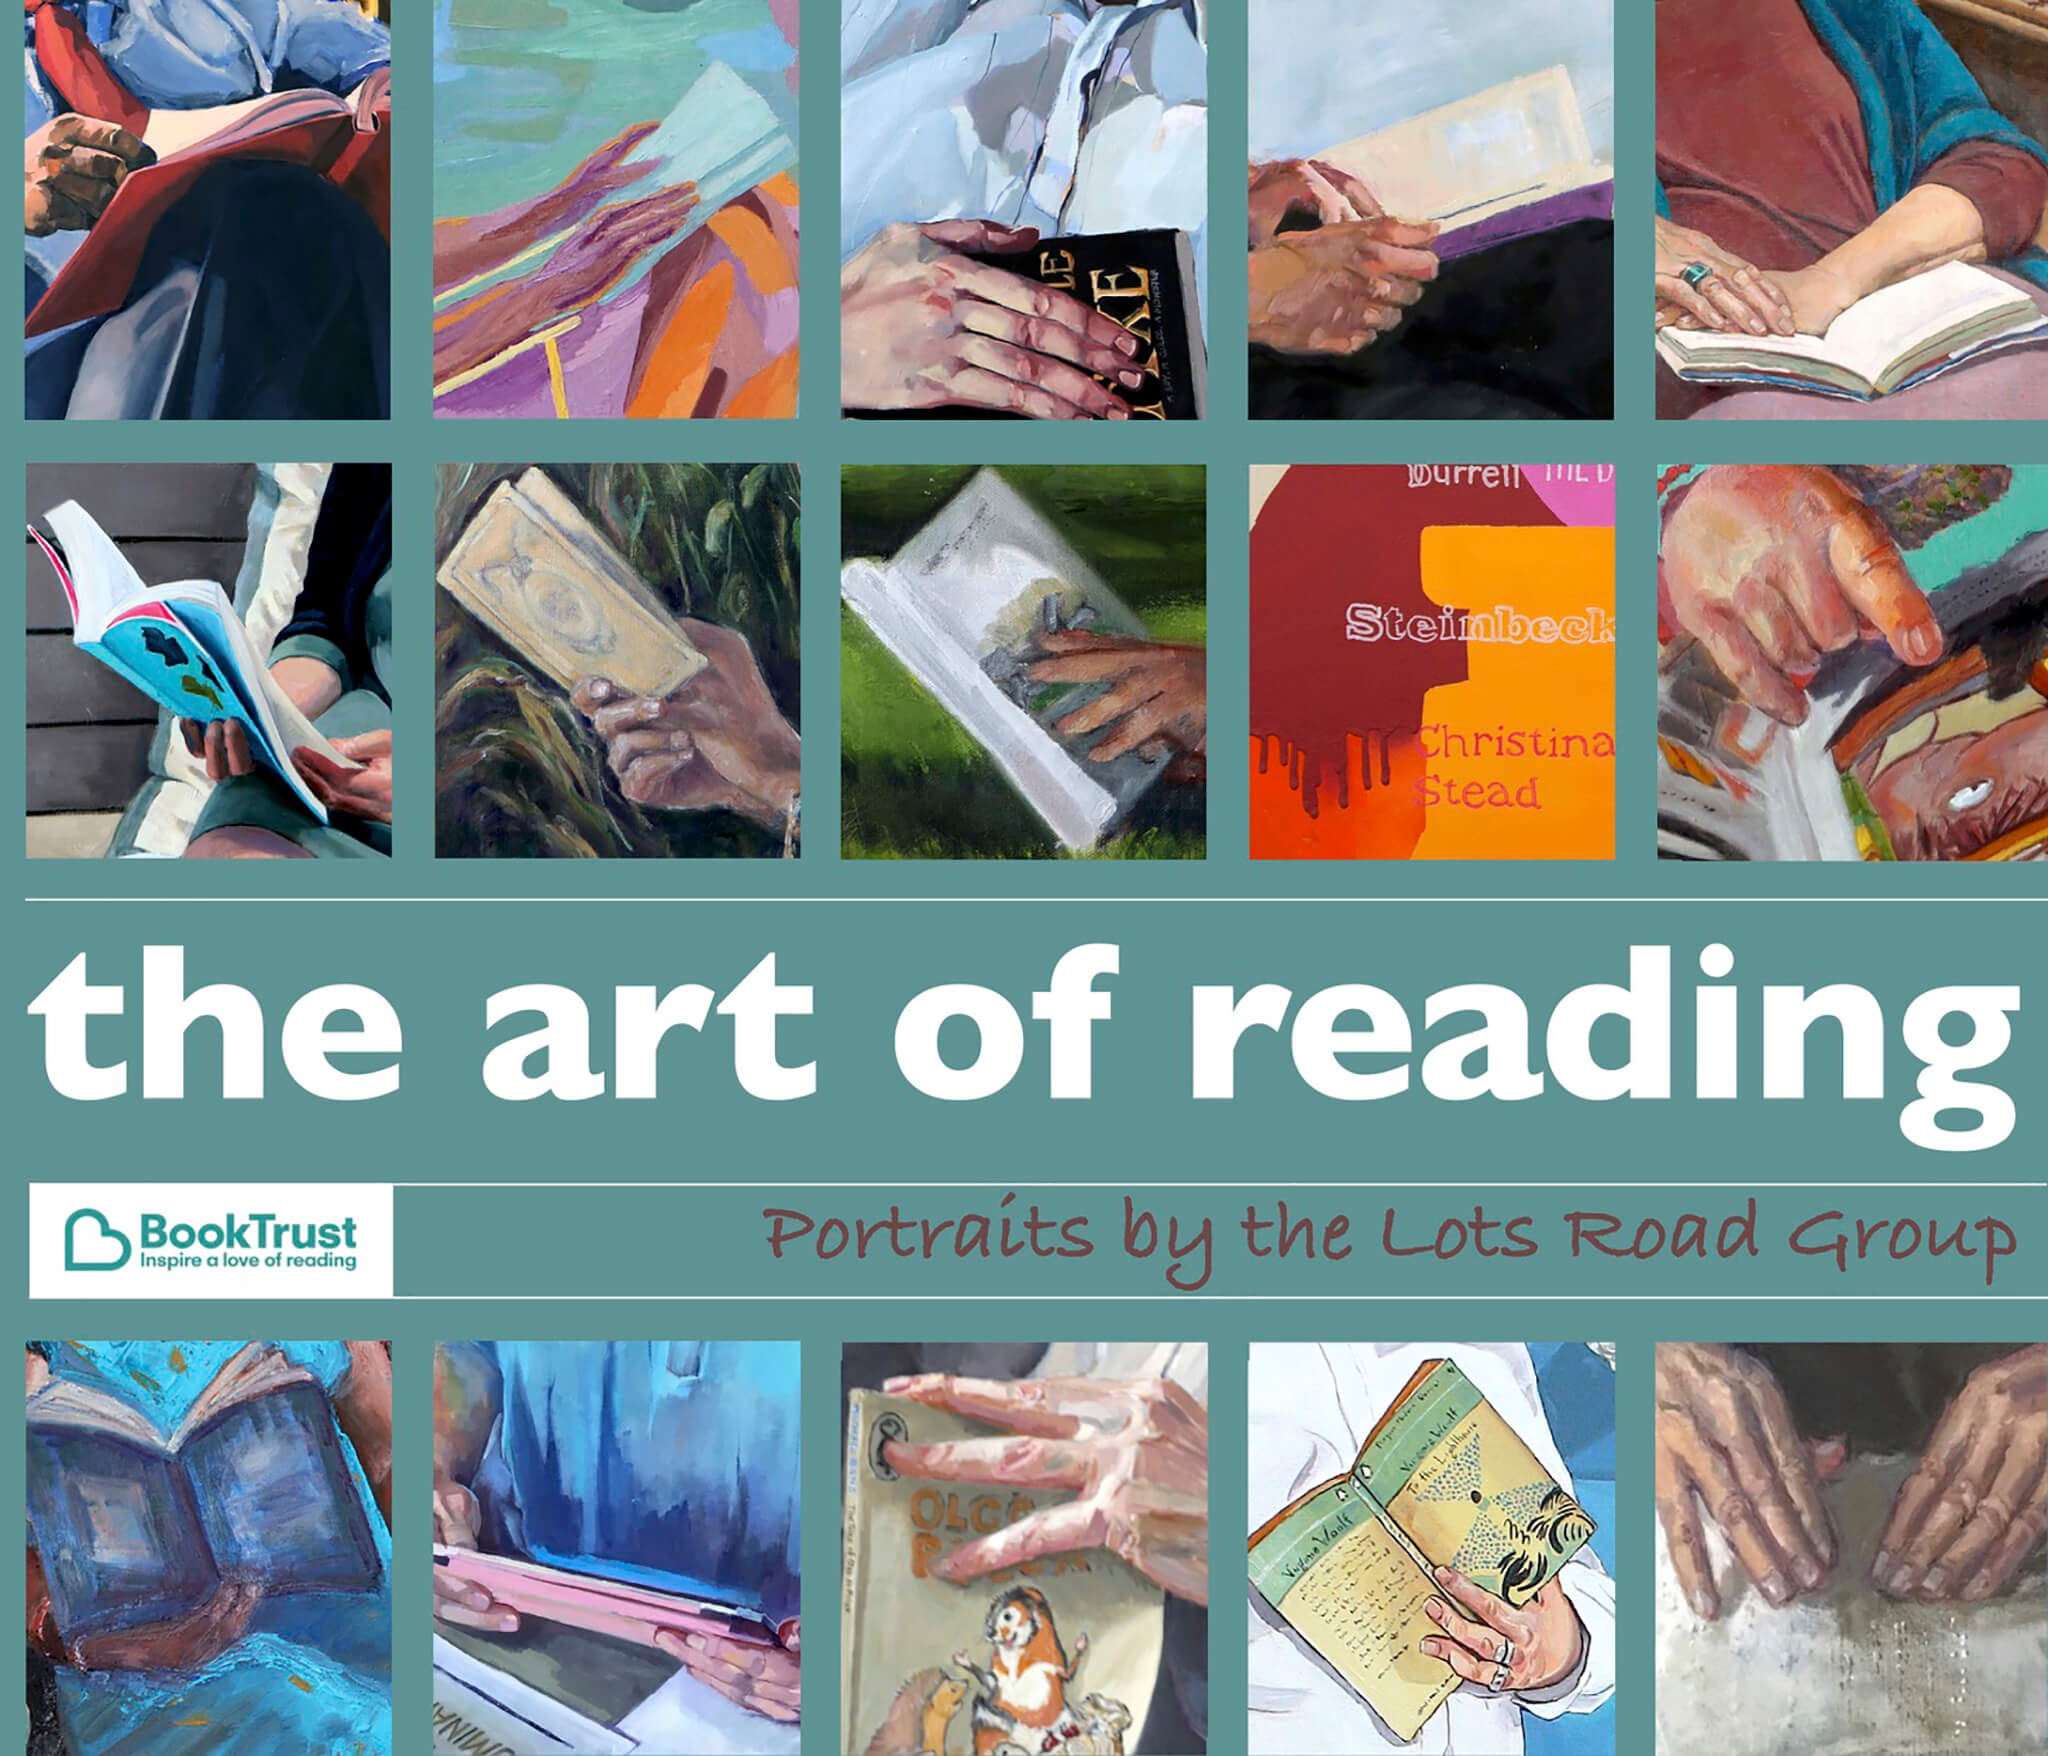 The Art of Reading by the Lots Road Group catalogue cover.